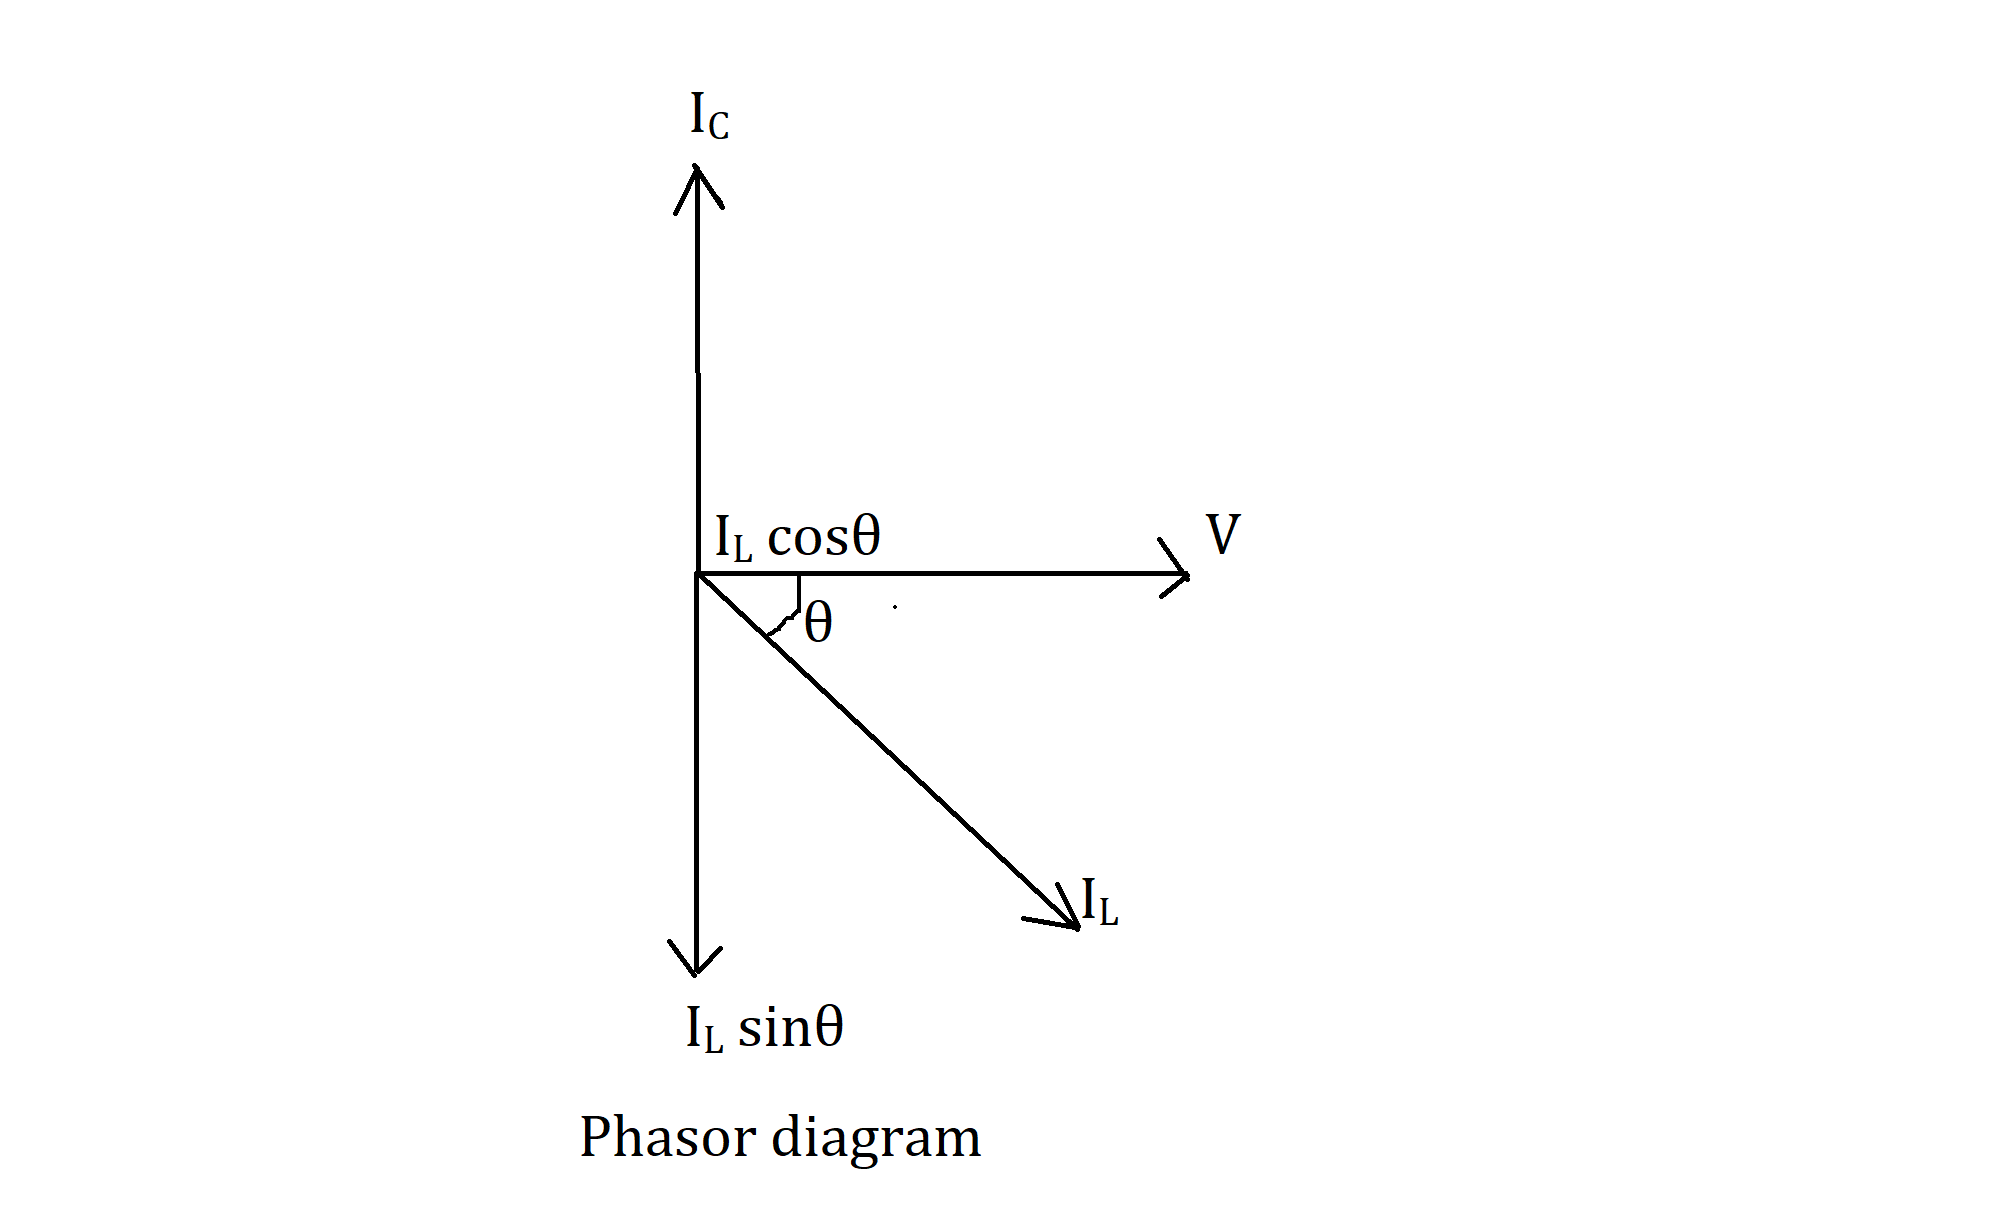 hight resolution of in the case of resistor and inductor which are in series with each other but they both are parallel to capacitor